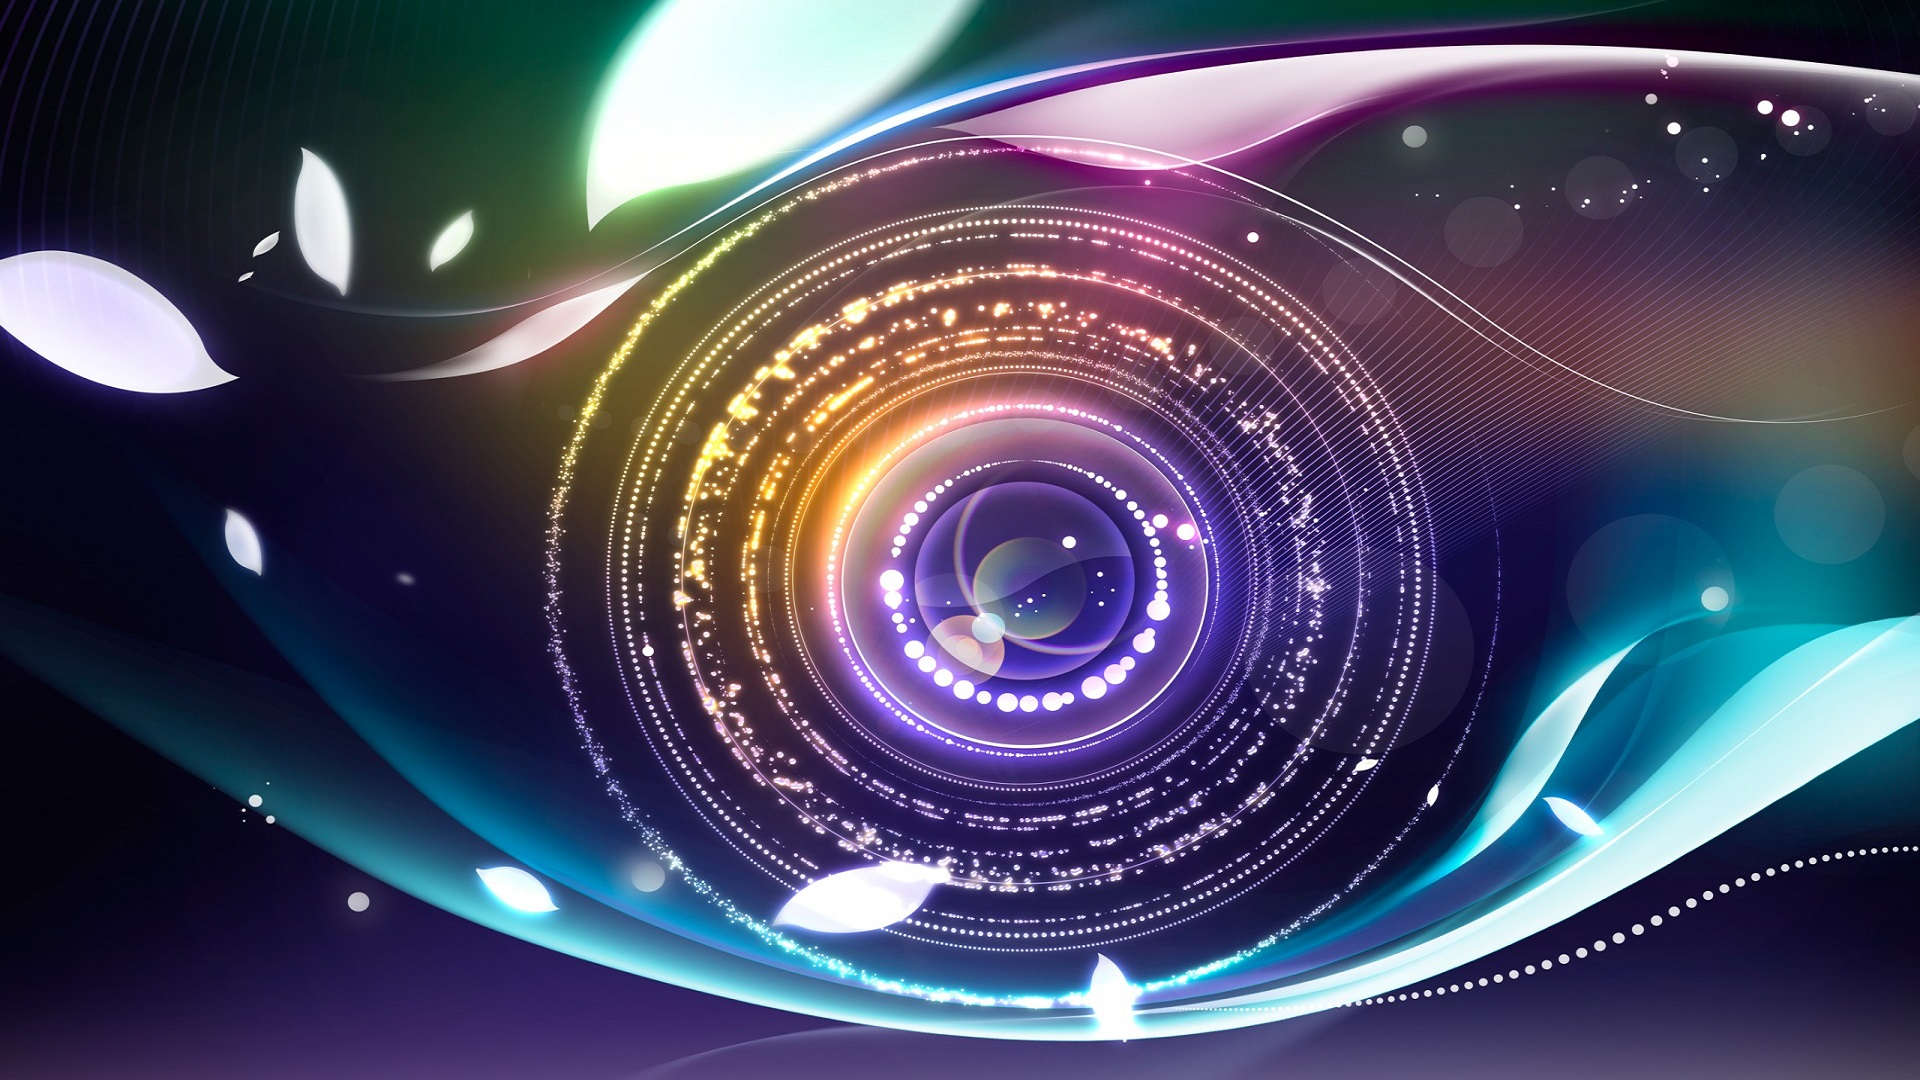 wallpaper wiki digital abstract eye hd 3d wallpaper